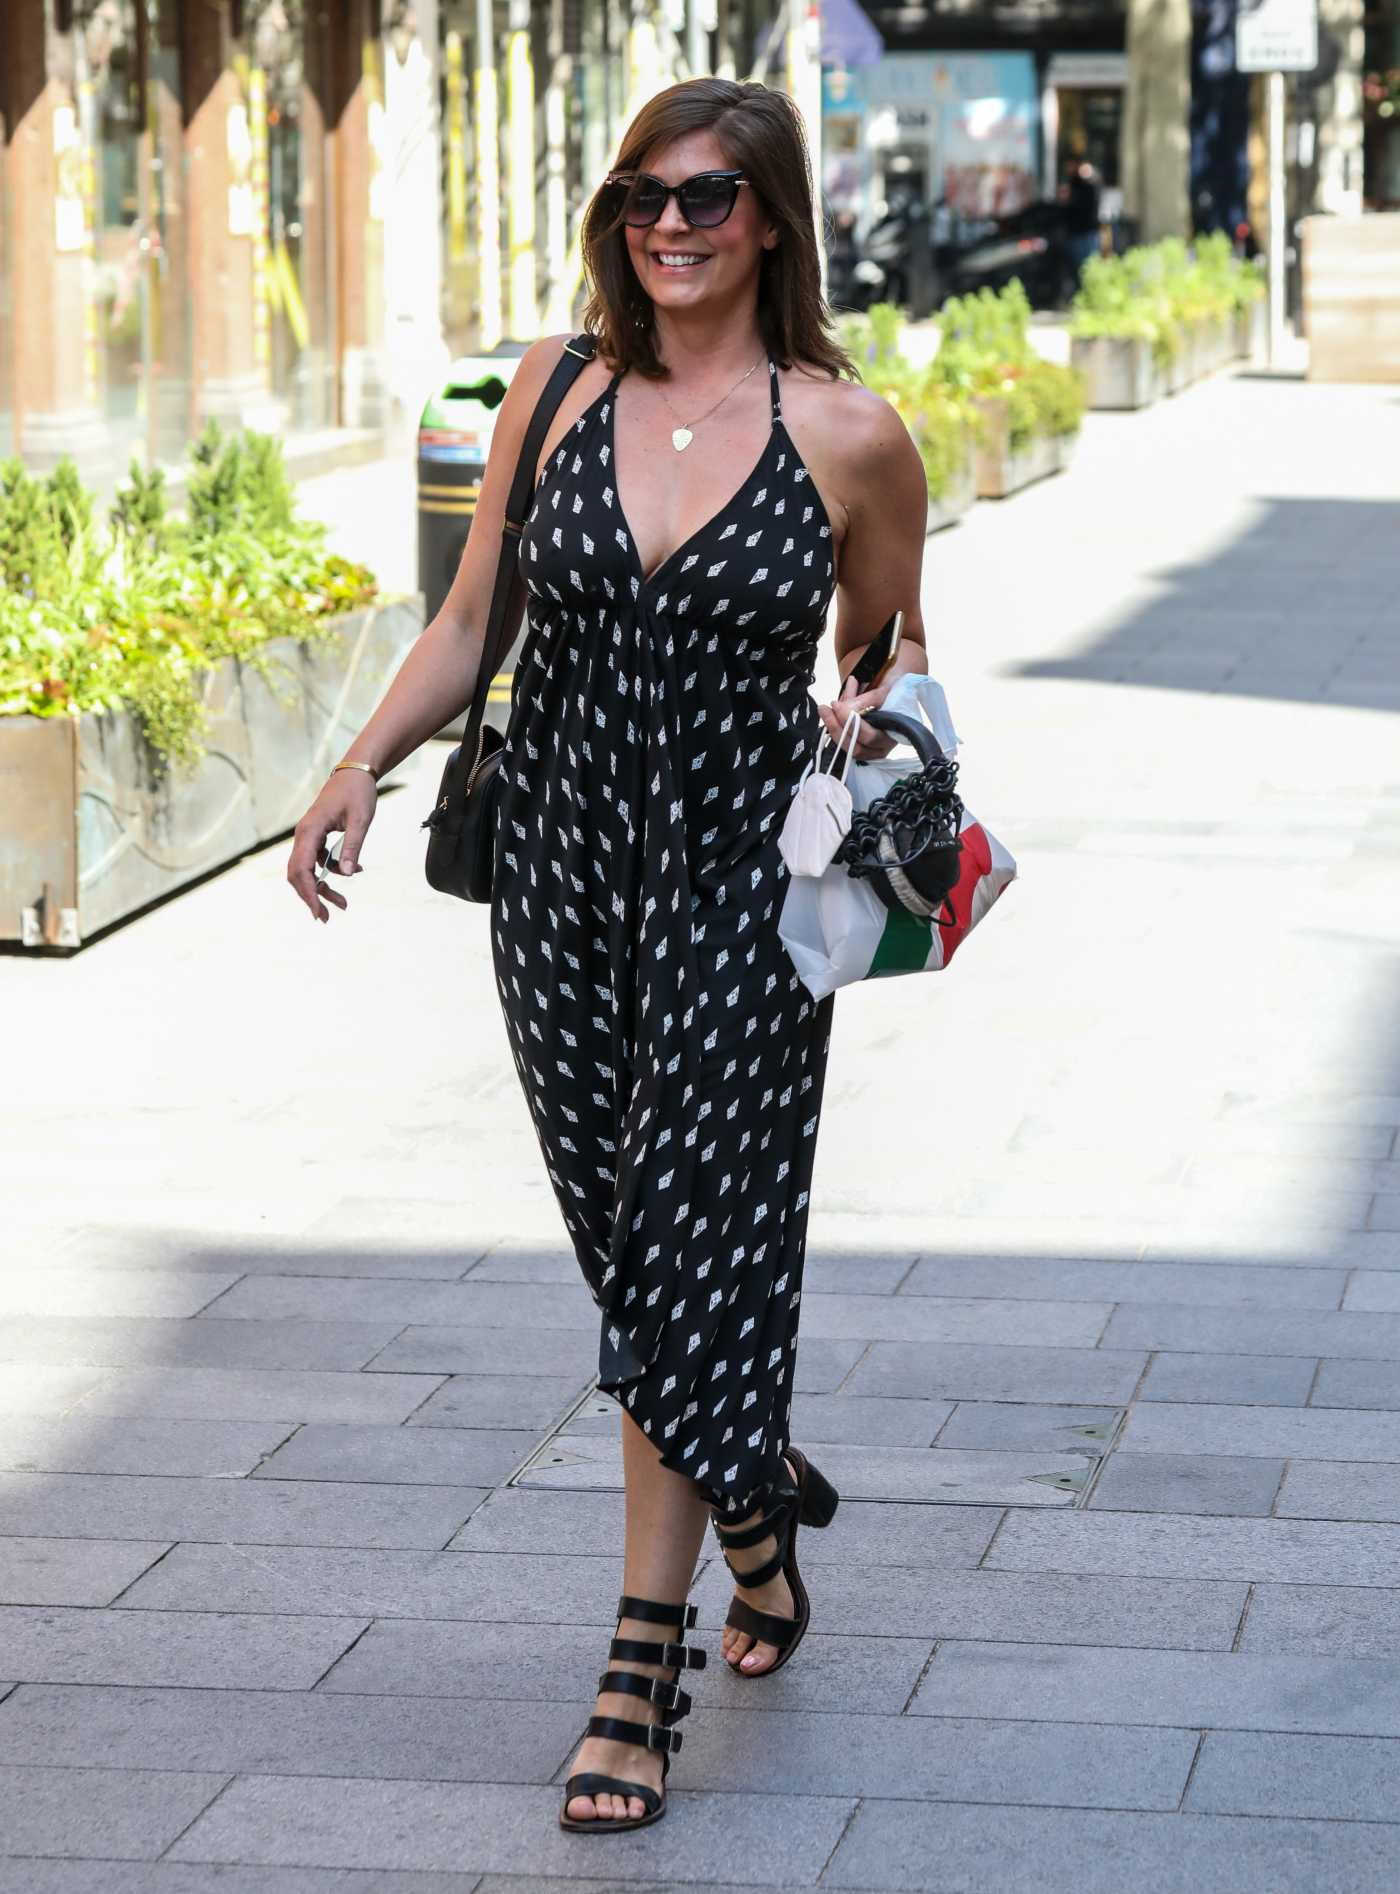 Lucy Horobin in a Black Summer Dress Arrives at the Global Radio Studios in London 06/16/2020